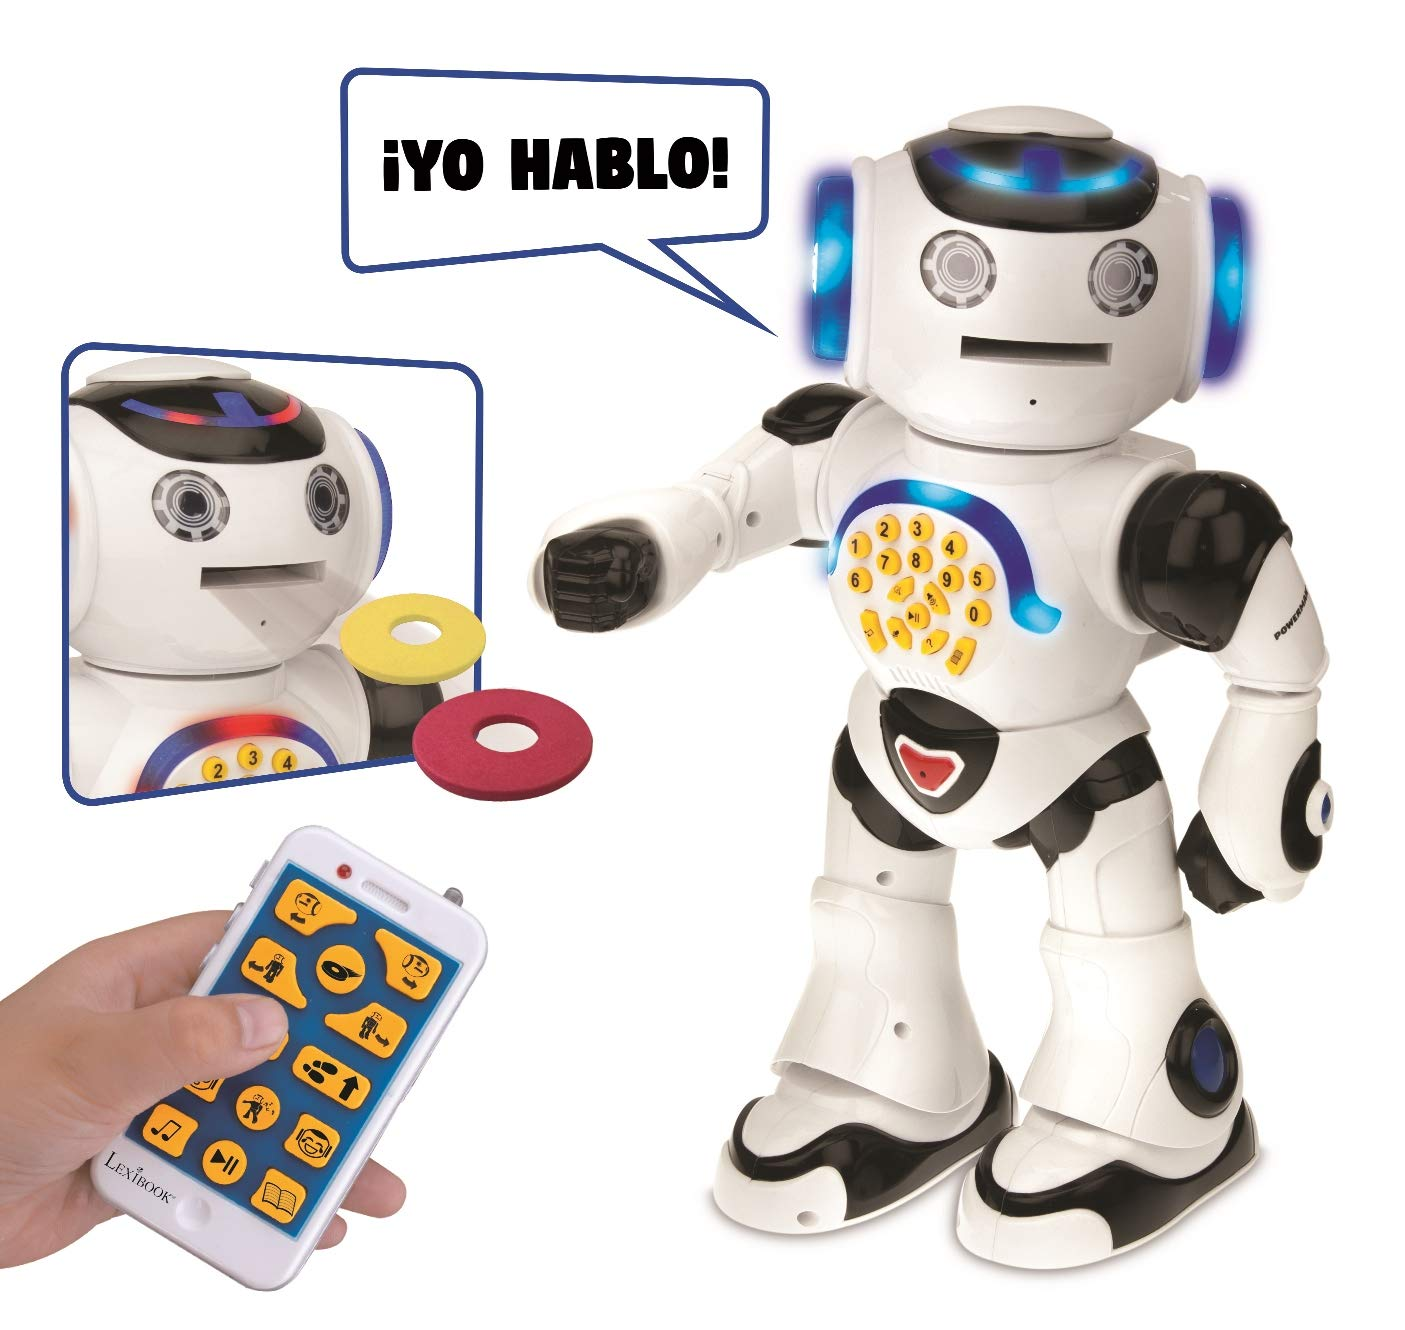 LEXIBOOK Powerman Robot educativo, Colore Bianco (rob50es)